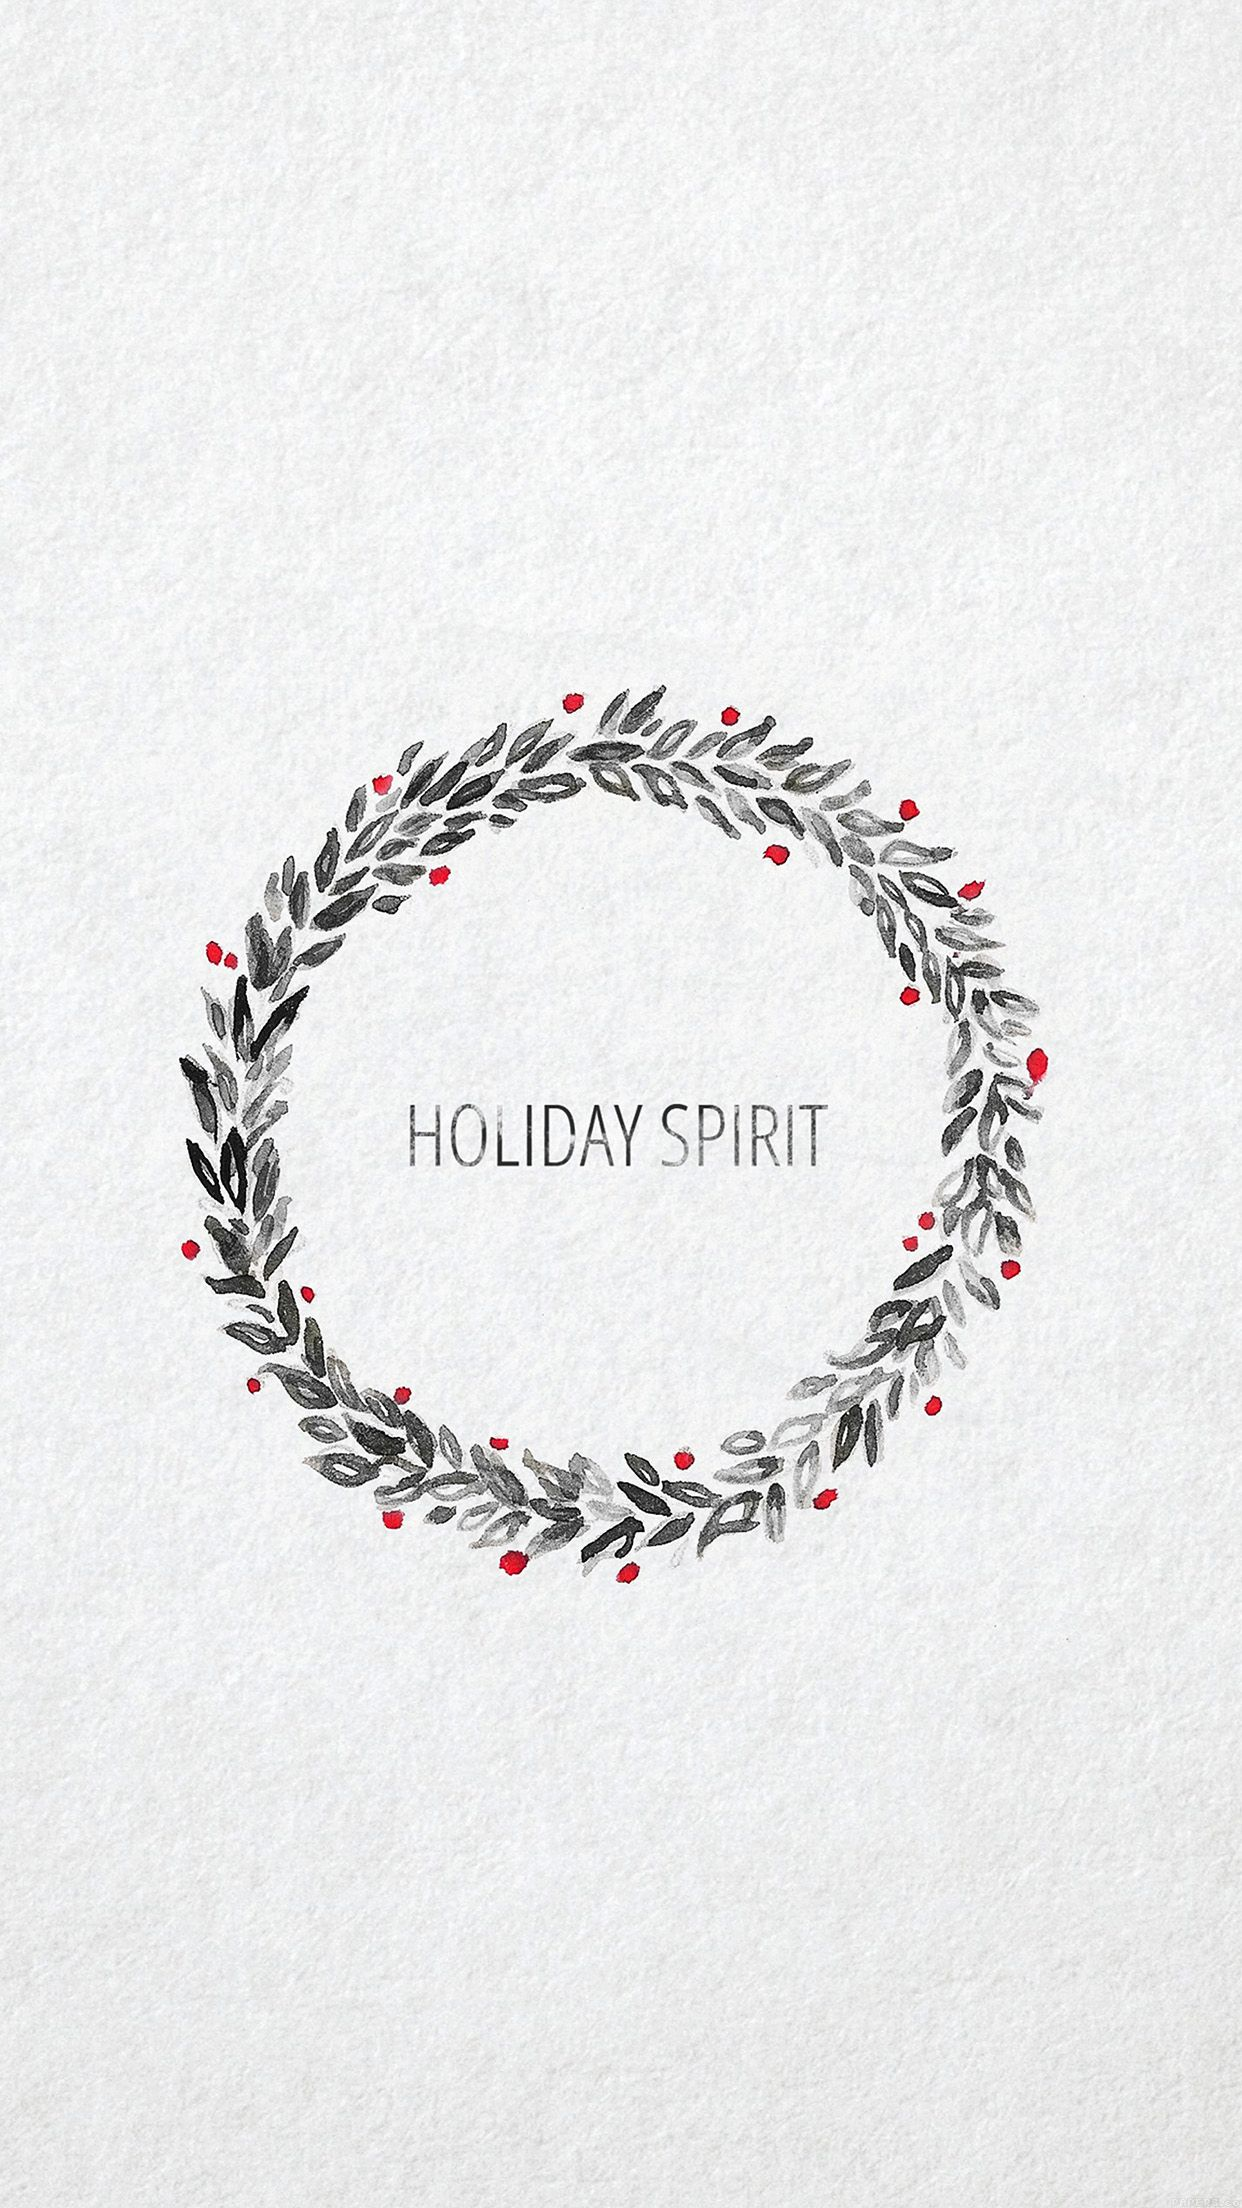 holiday spirit minimalist christmas art iphone 6 plus